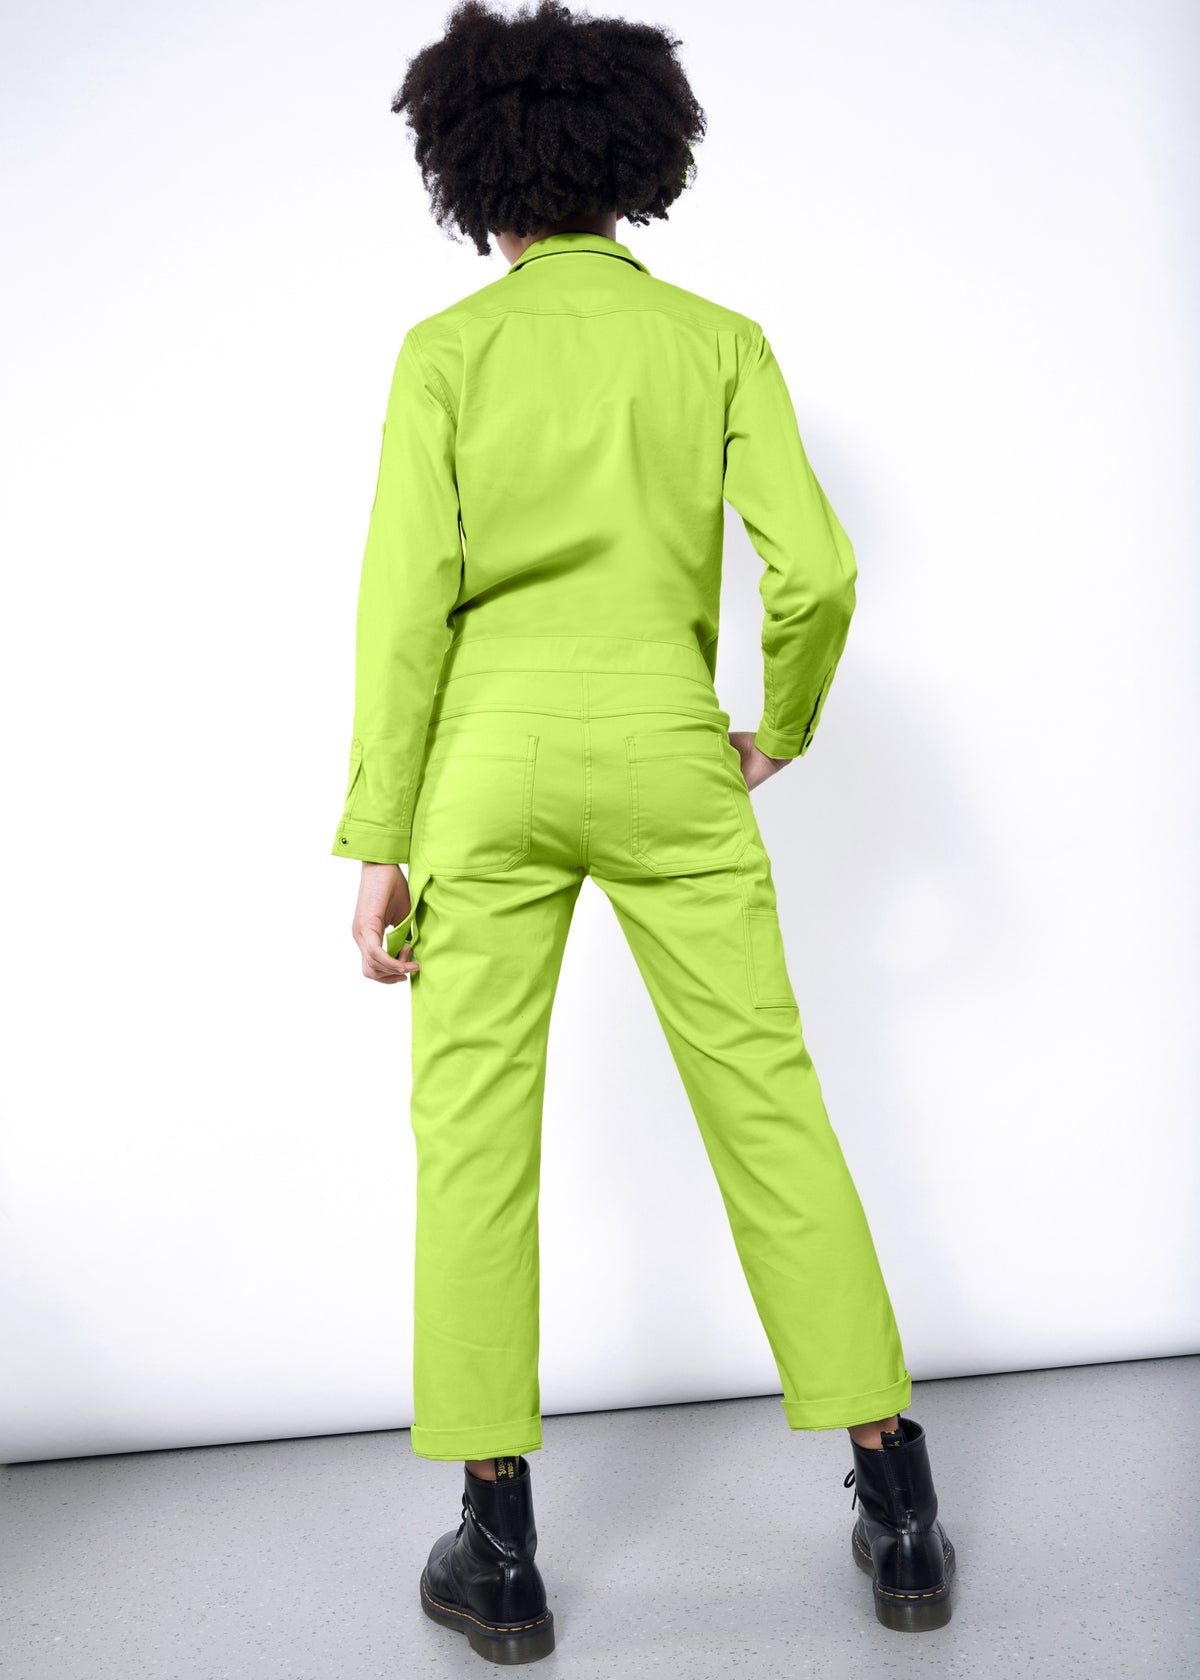 Model wearing neon green long sleeved essential coverall jumpsuit in size small, with hand in pocket, facing away